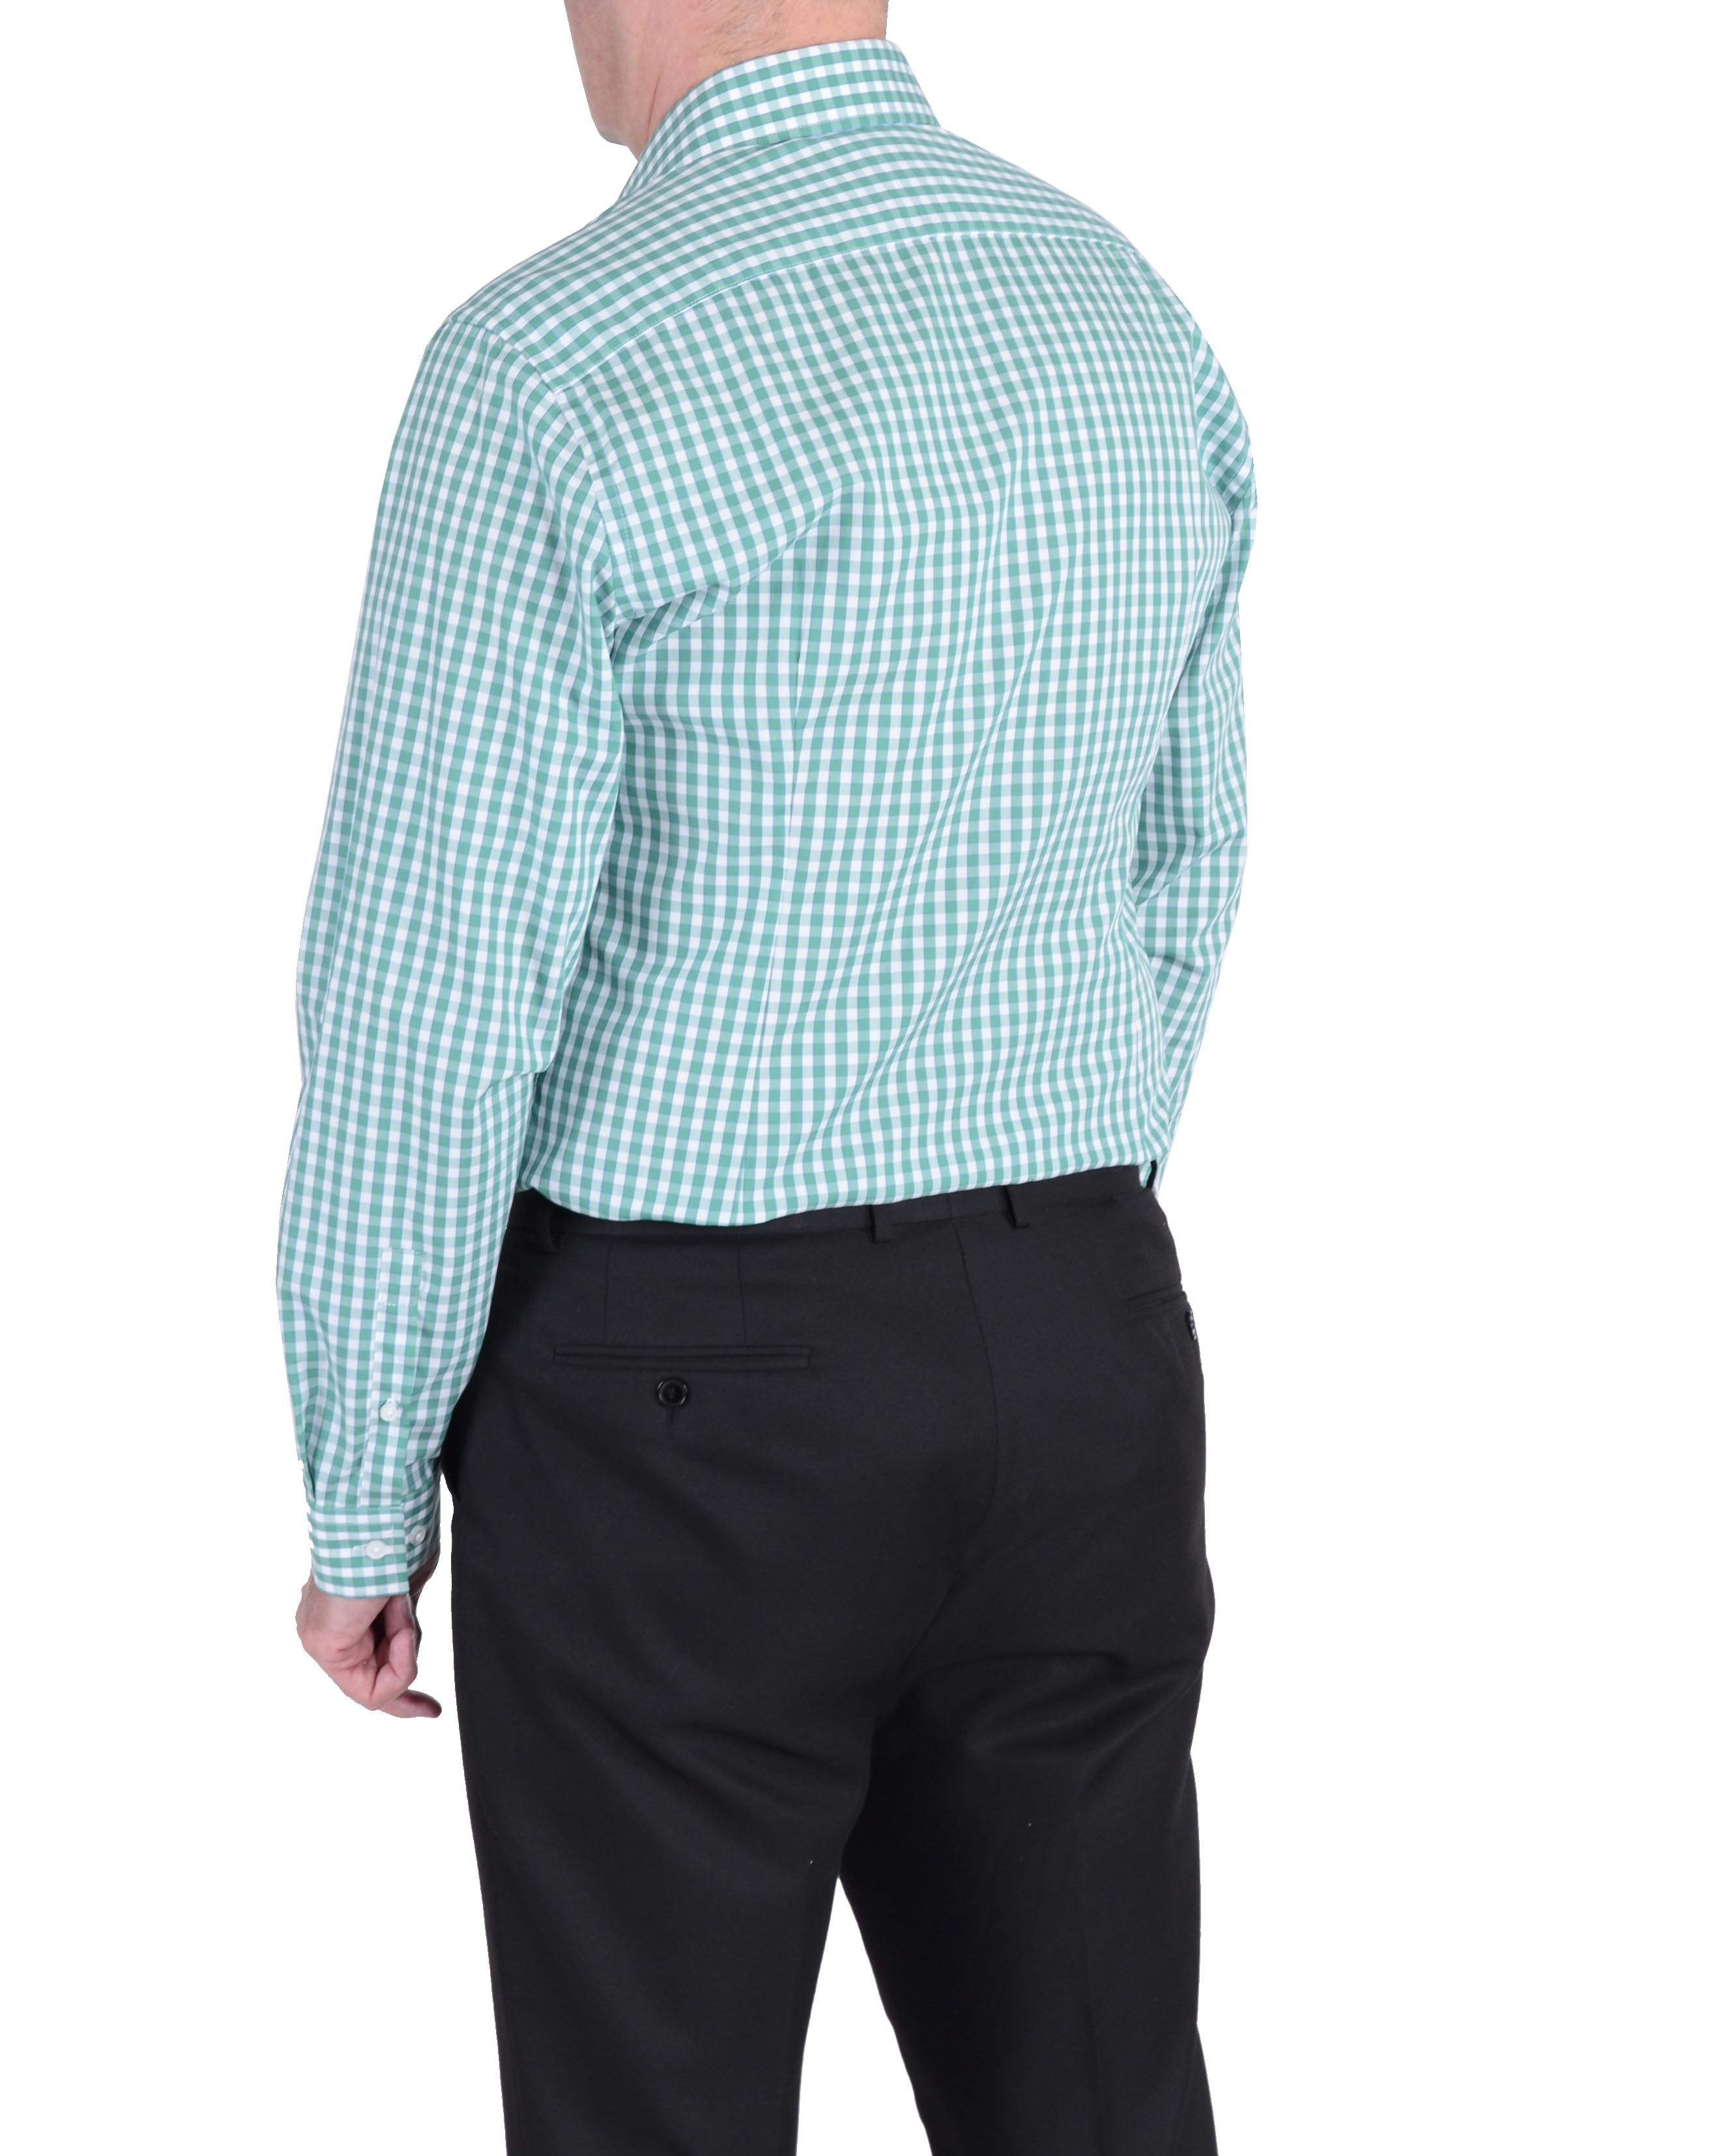 Lyst double two slim fit formal shirt in green for men for Trim fit tuxedo shirt